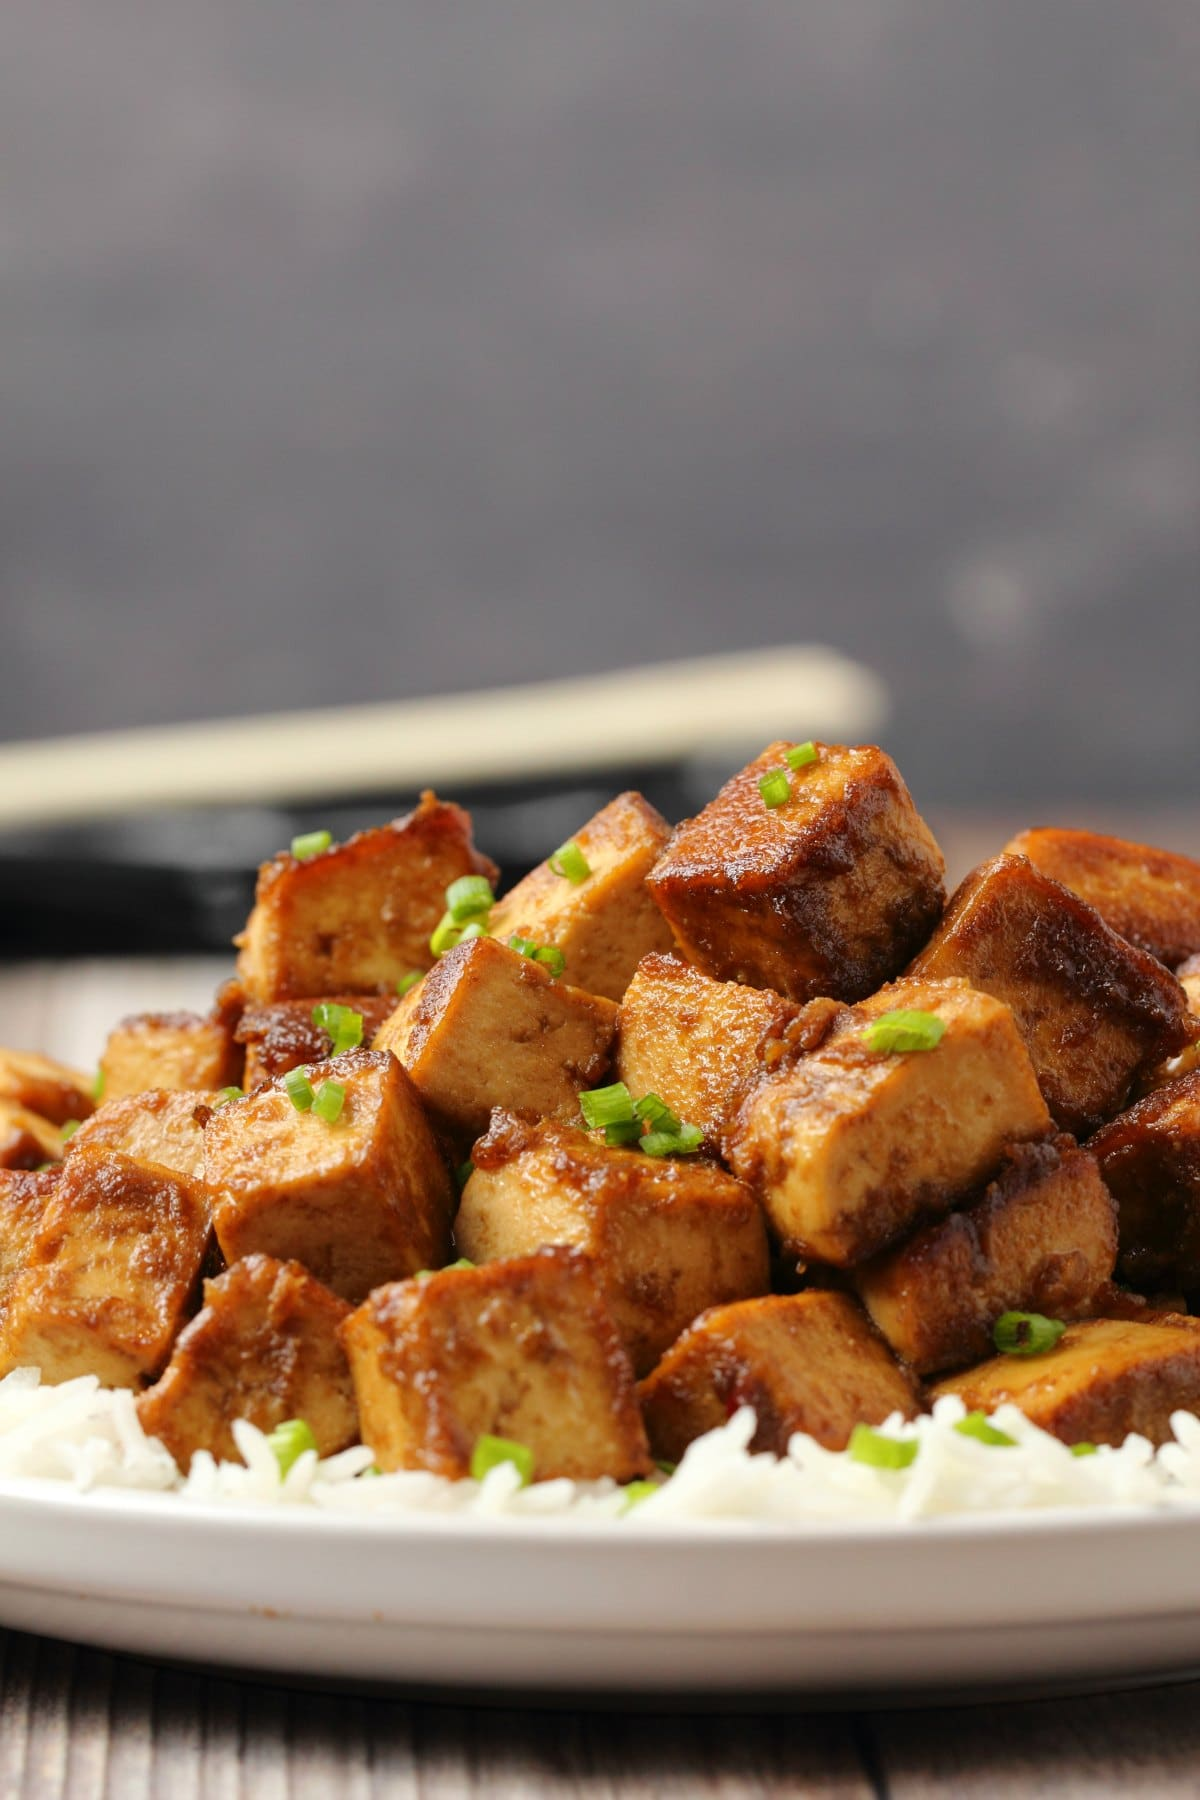 Marinated tofu topped with chopped chives and on a bed of rice.